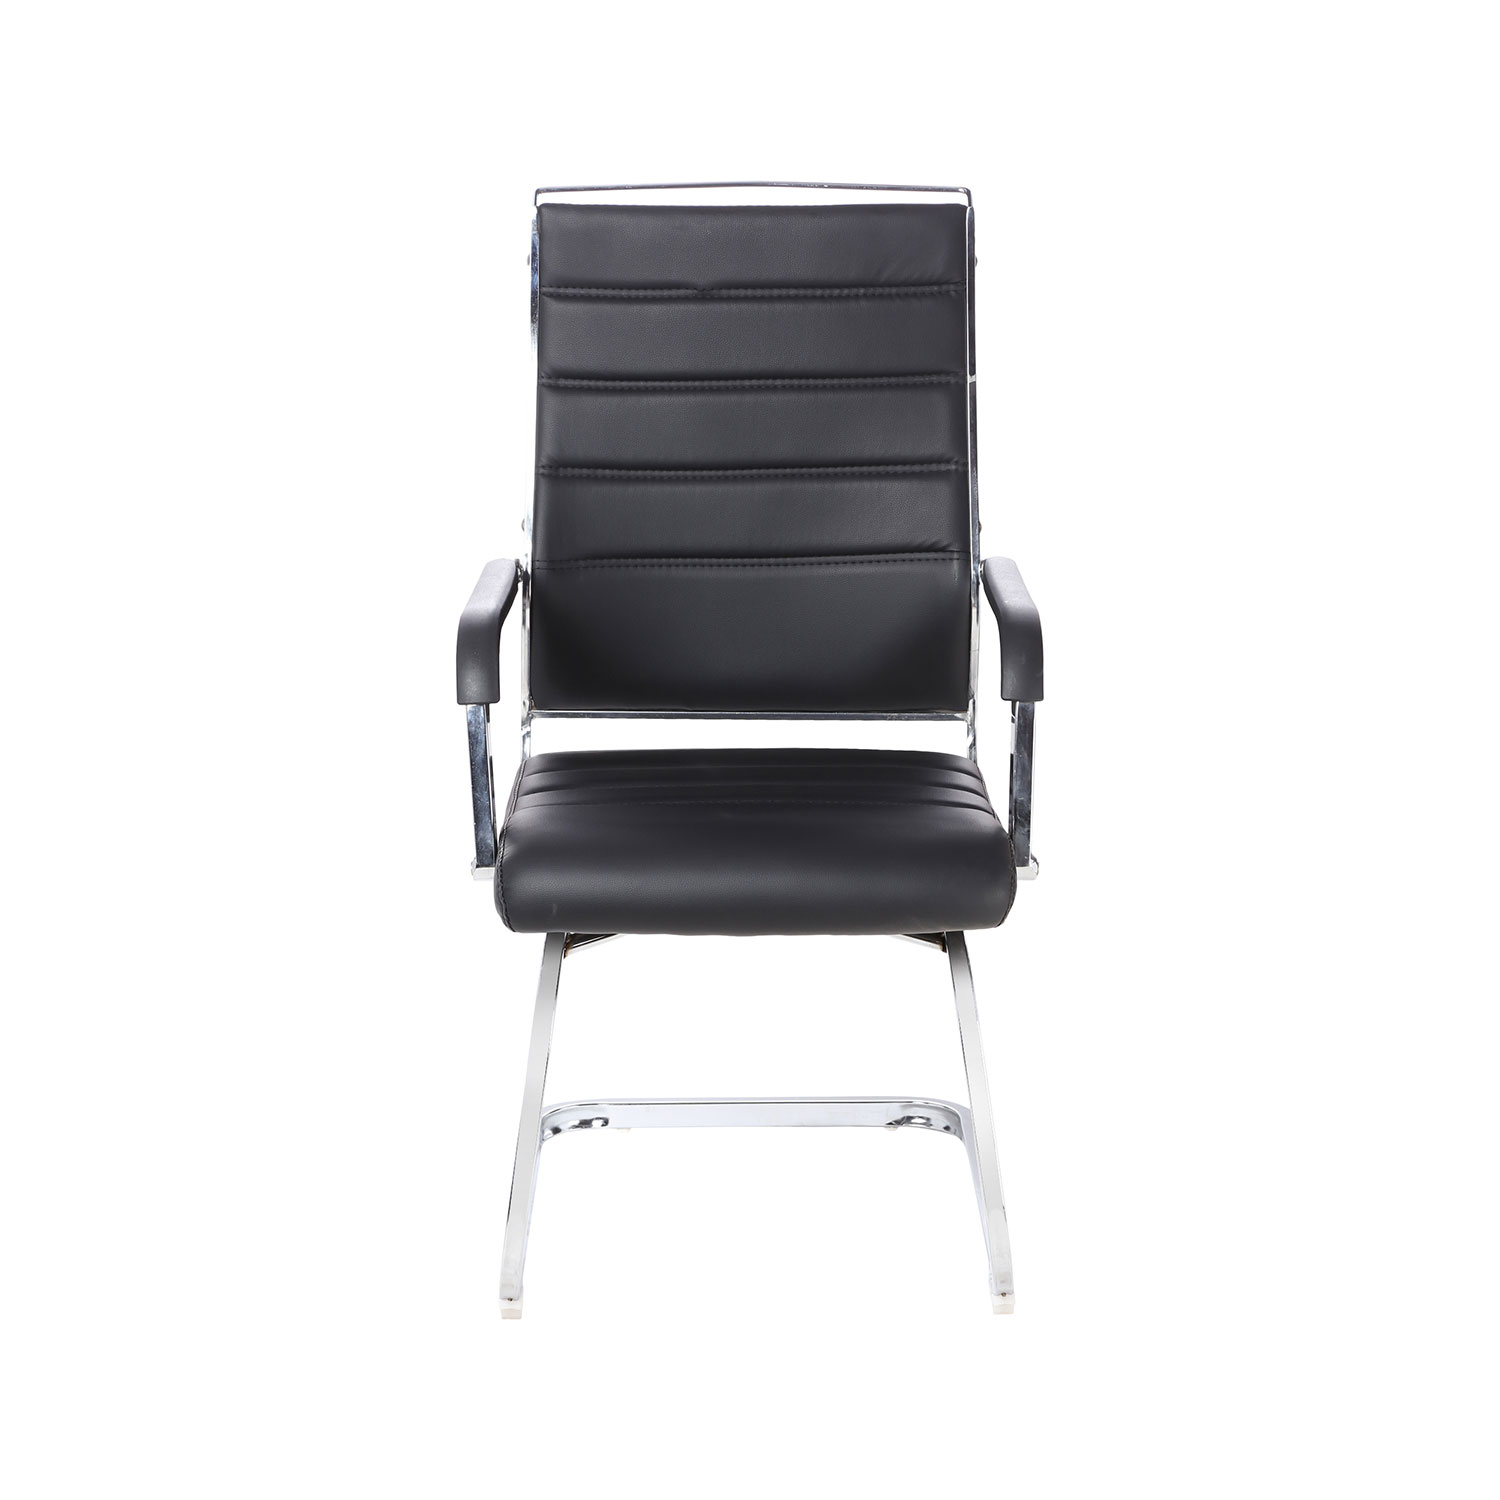 revolving chair and esports gaming arrotrate medium back fix in black